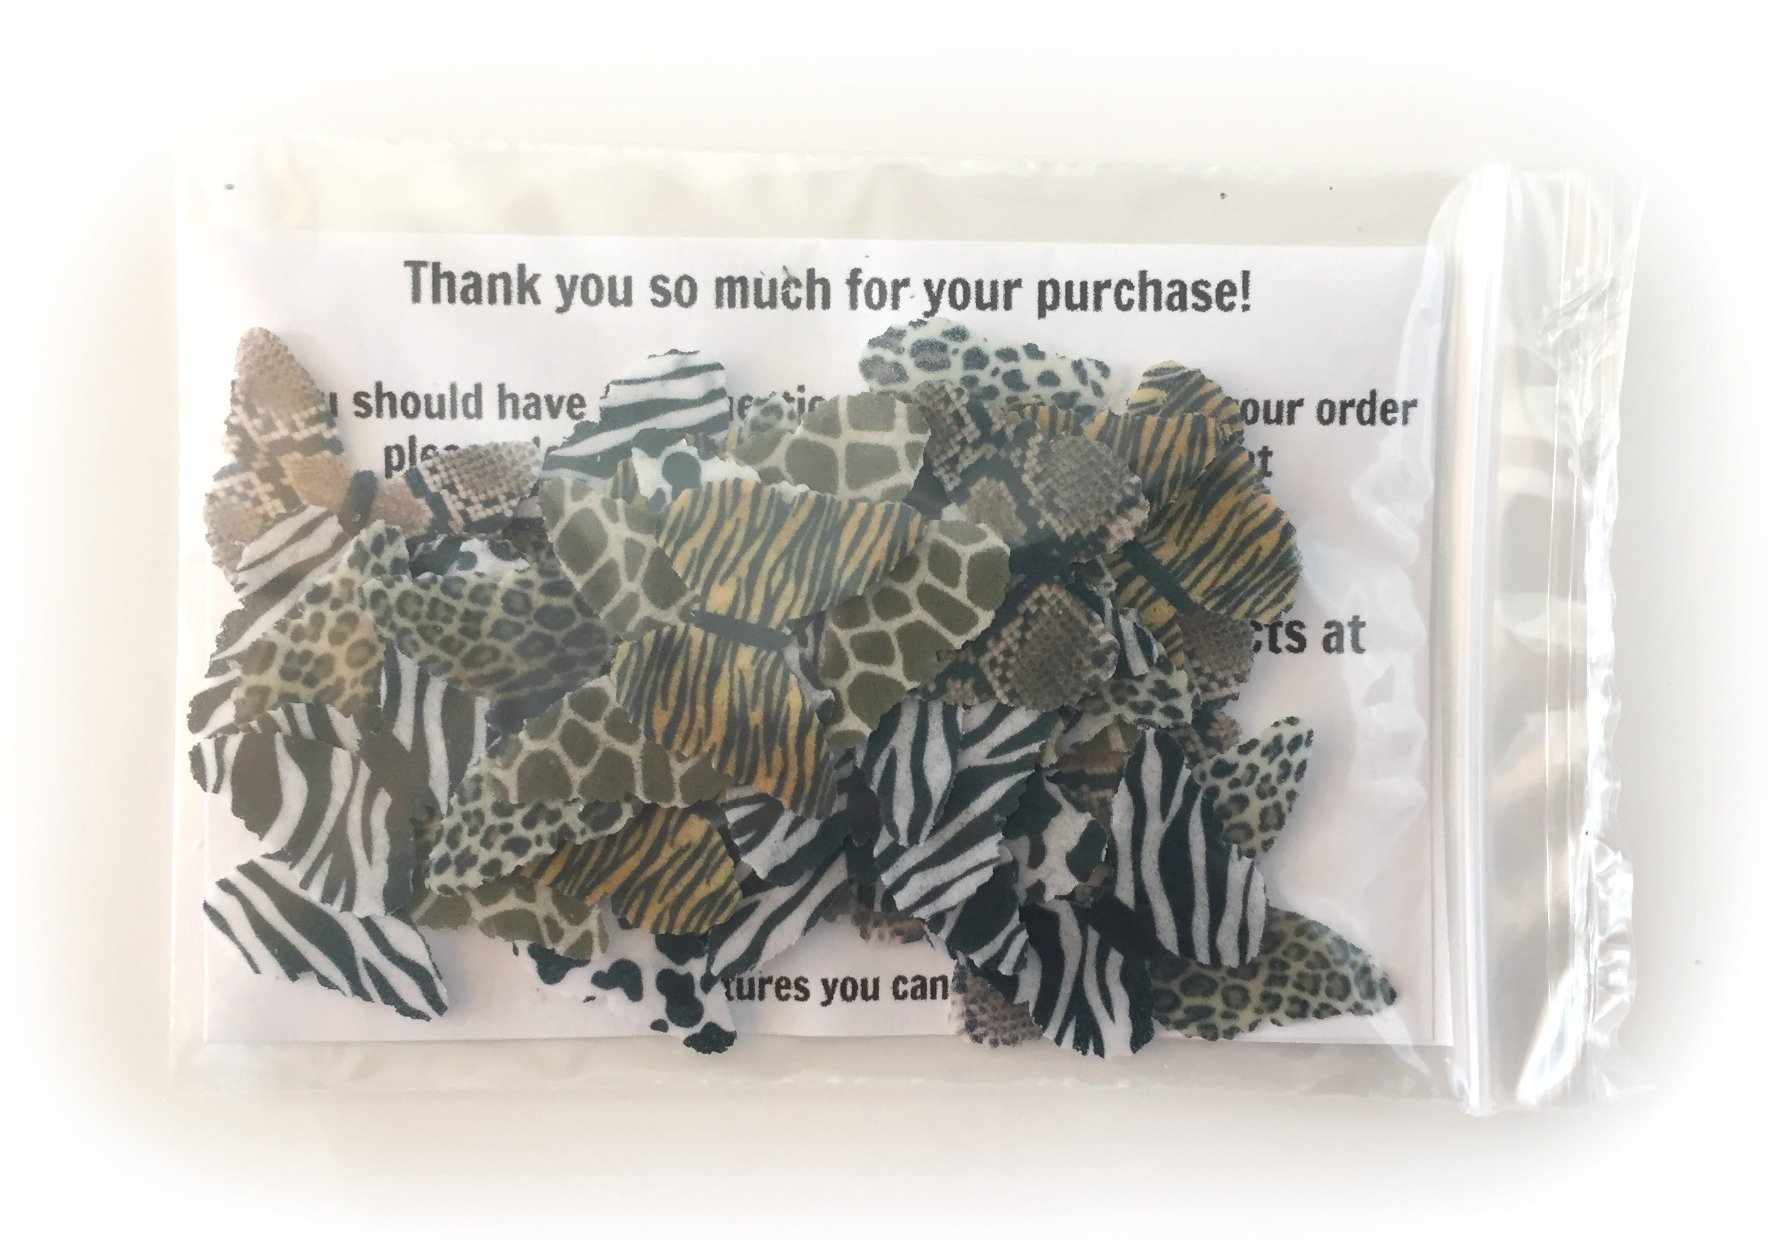 24 Animal Print Edible Wafer Paper Butterflies Mini Very Small 1'' Cake Cupcake Toppers Decoration Cow Giraffe Snake Leopard Cheetah Zebra Tiger by Deco Machine Butterflies (Image #3)